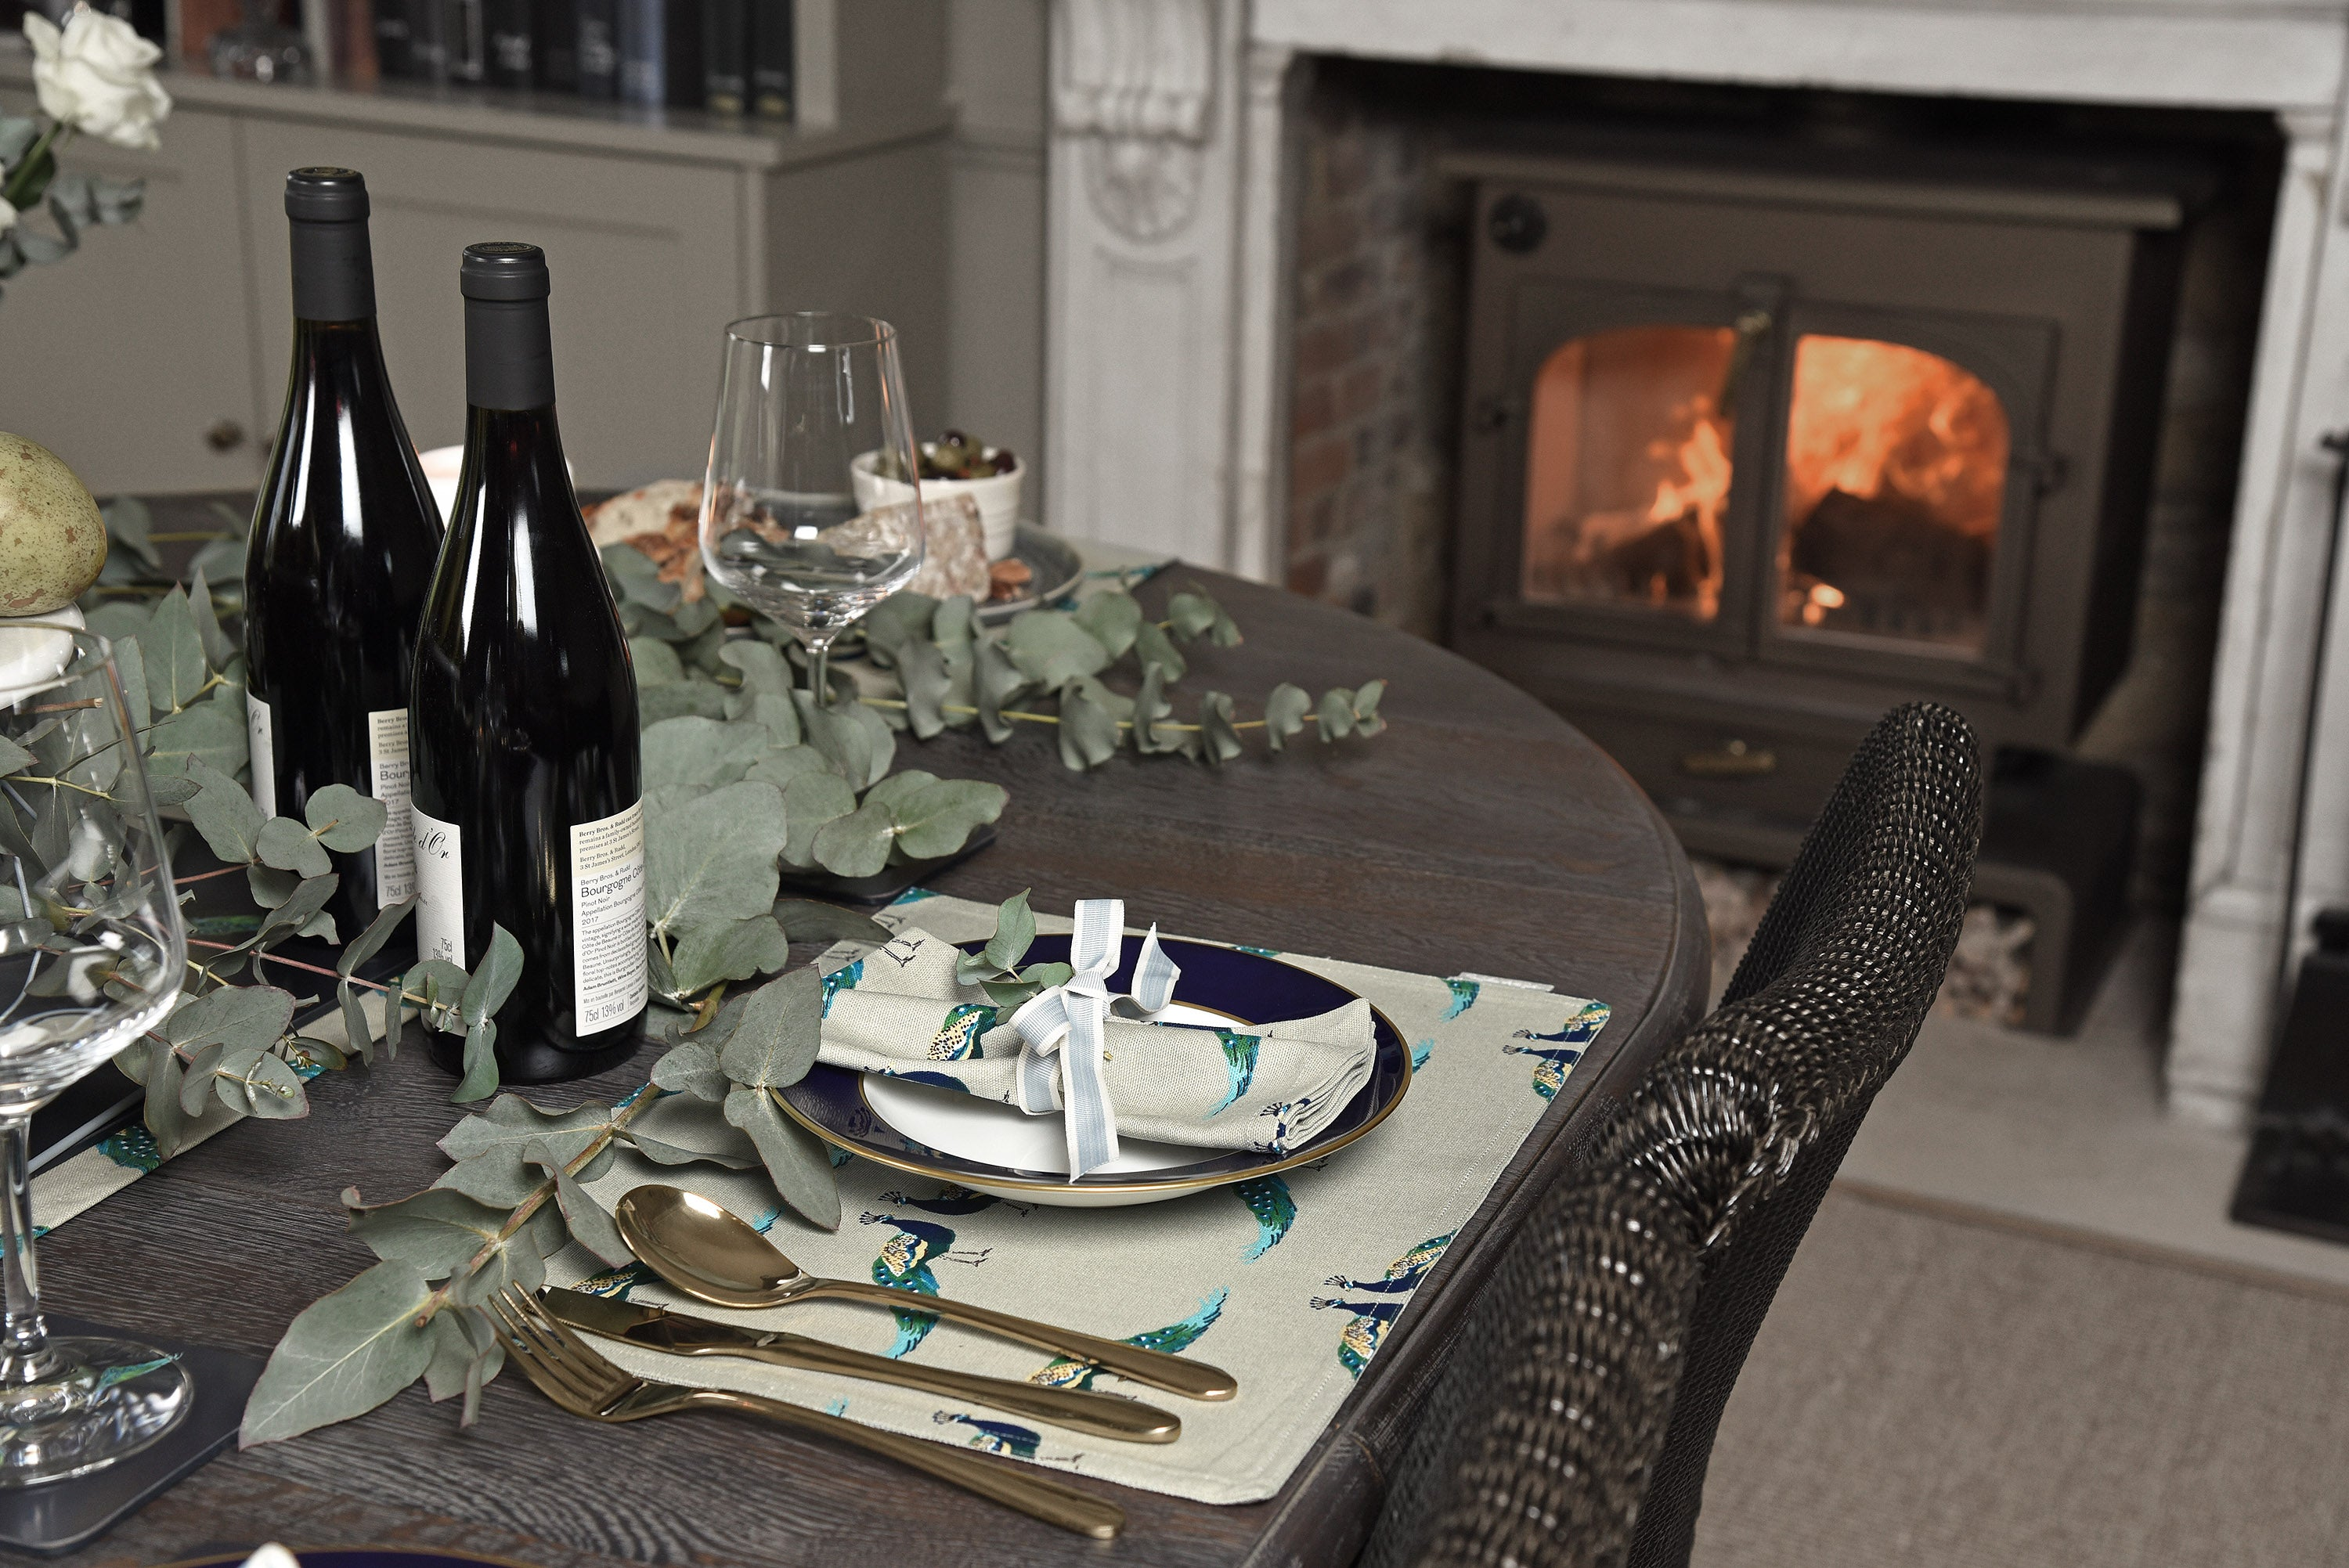 Autumn table setting ideas for your home with peacocks style placemat, napkins and cosy fire